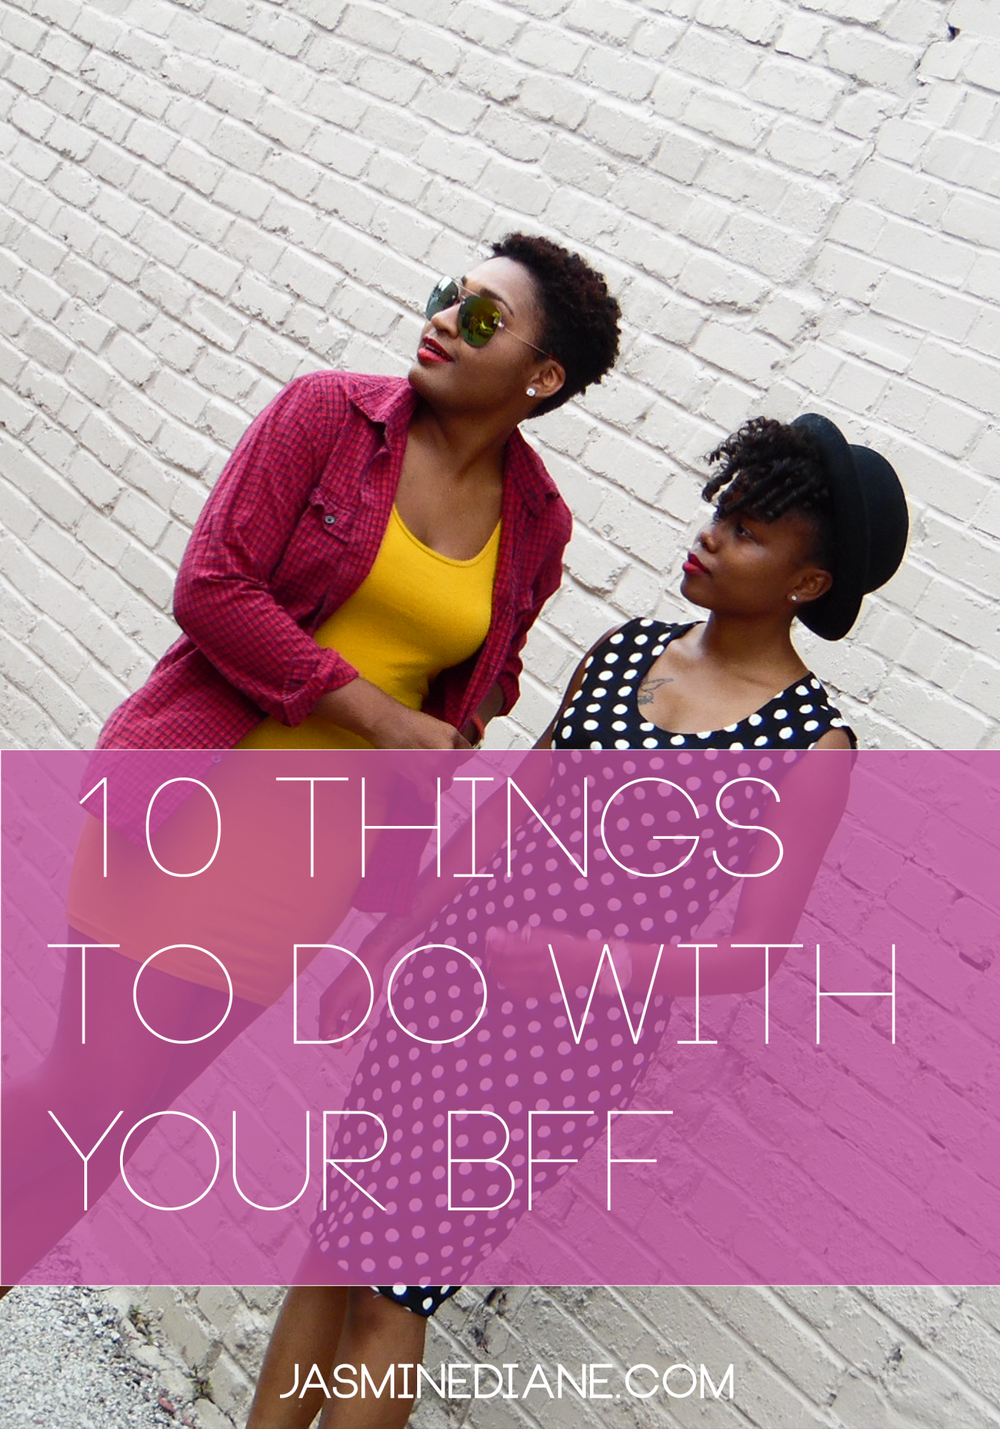 10 Things To Do with your BFF